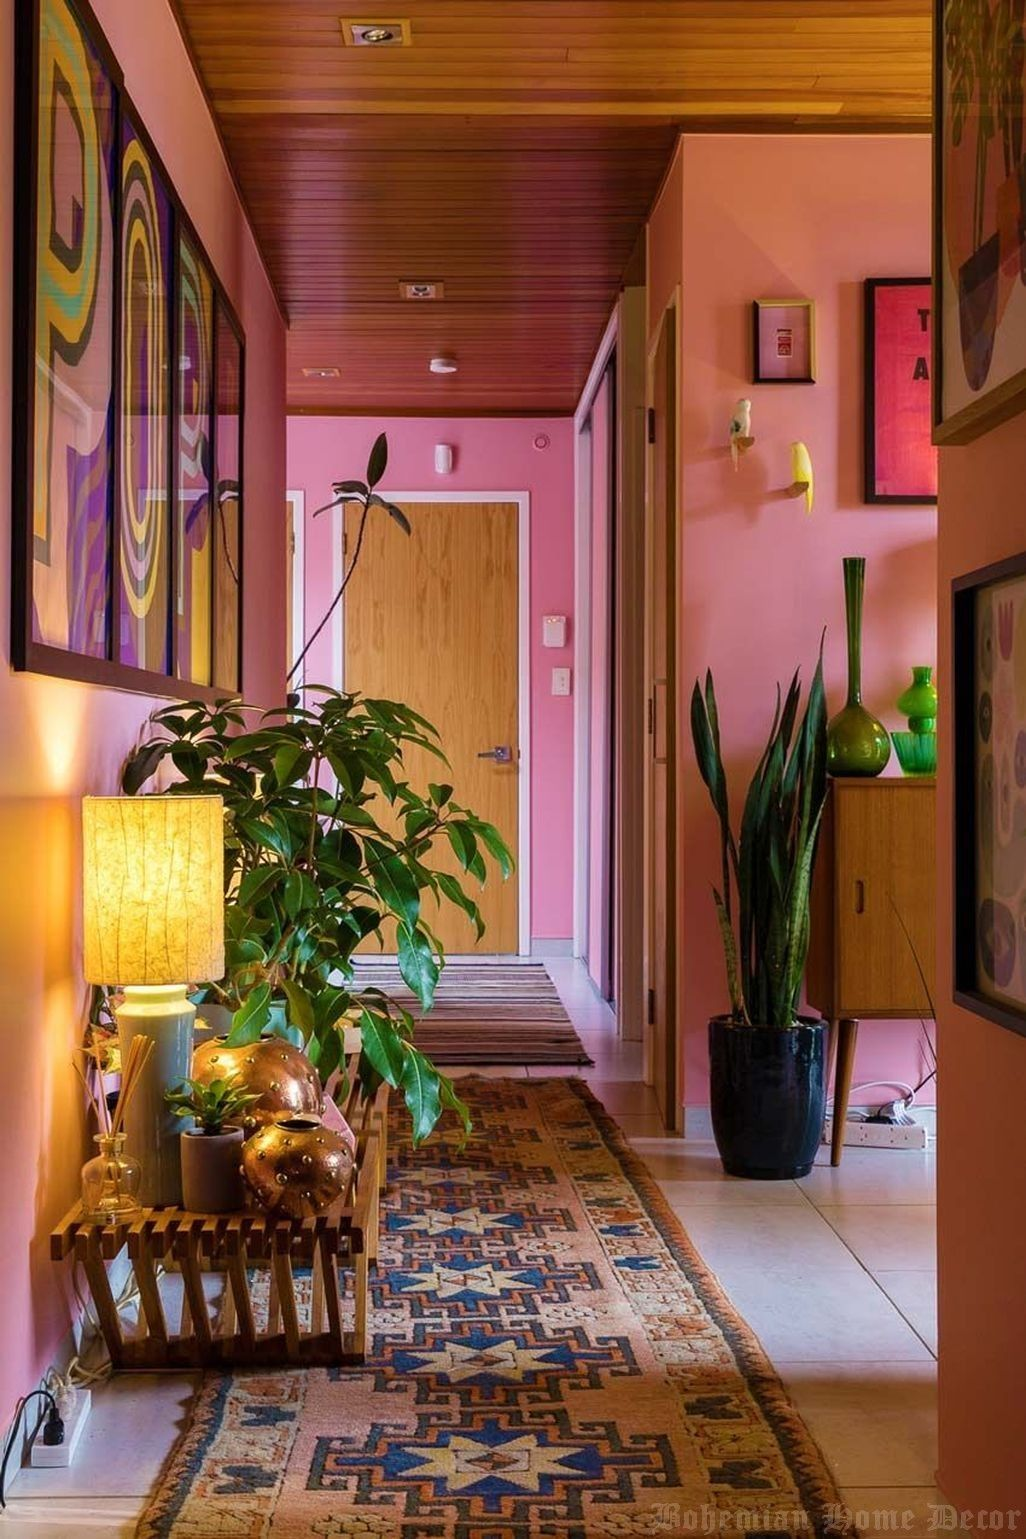 5 Stylish Ideas For Your Bohemian Home Decor Oct 2020